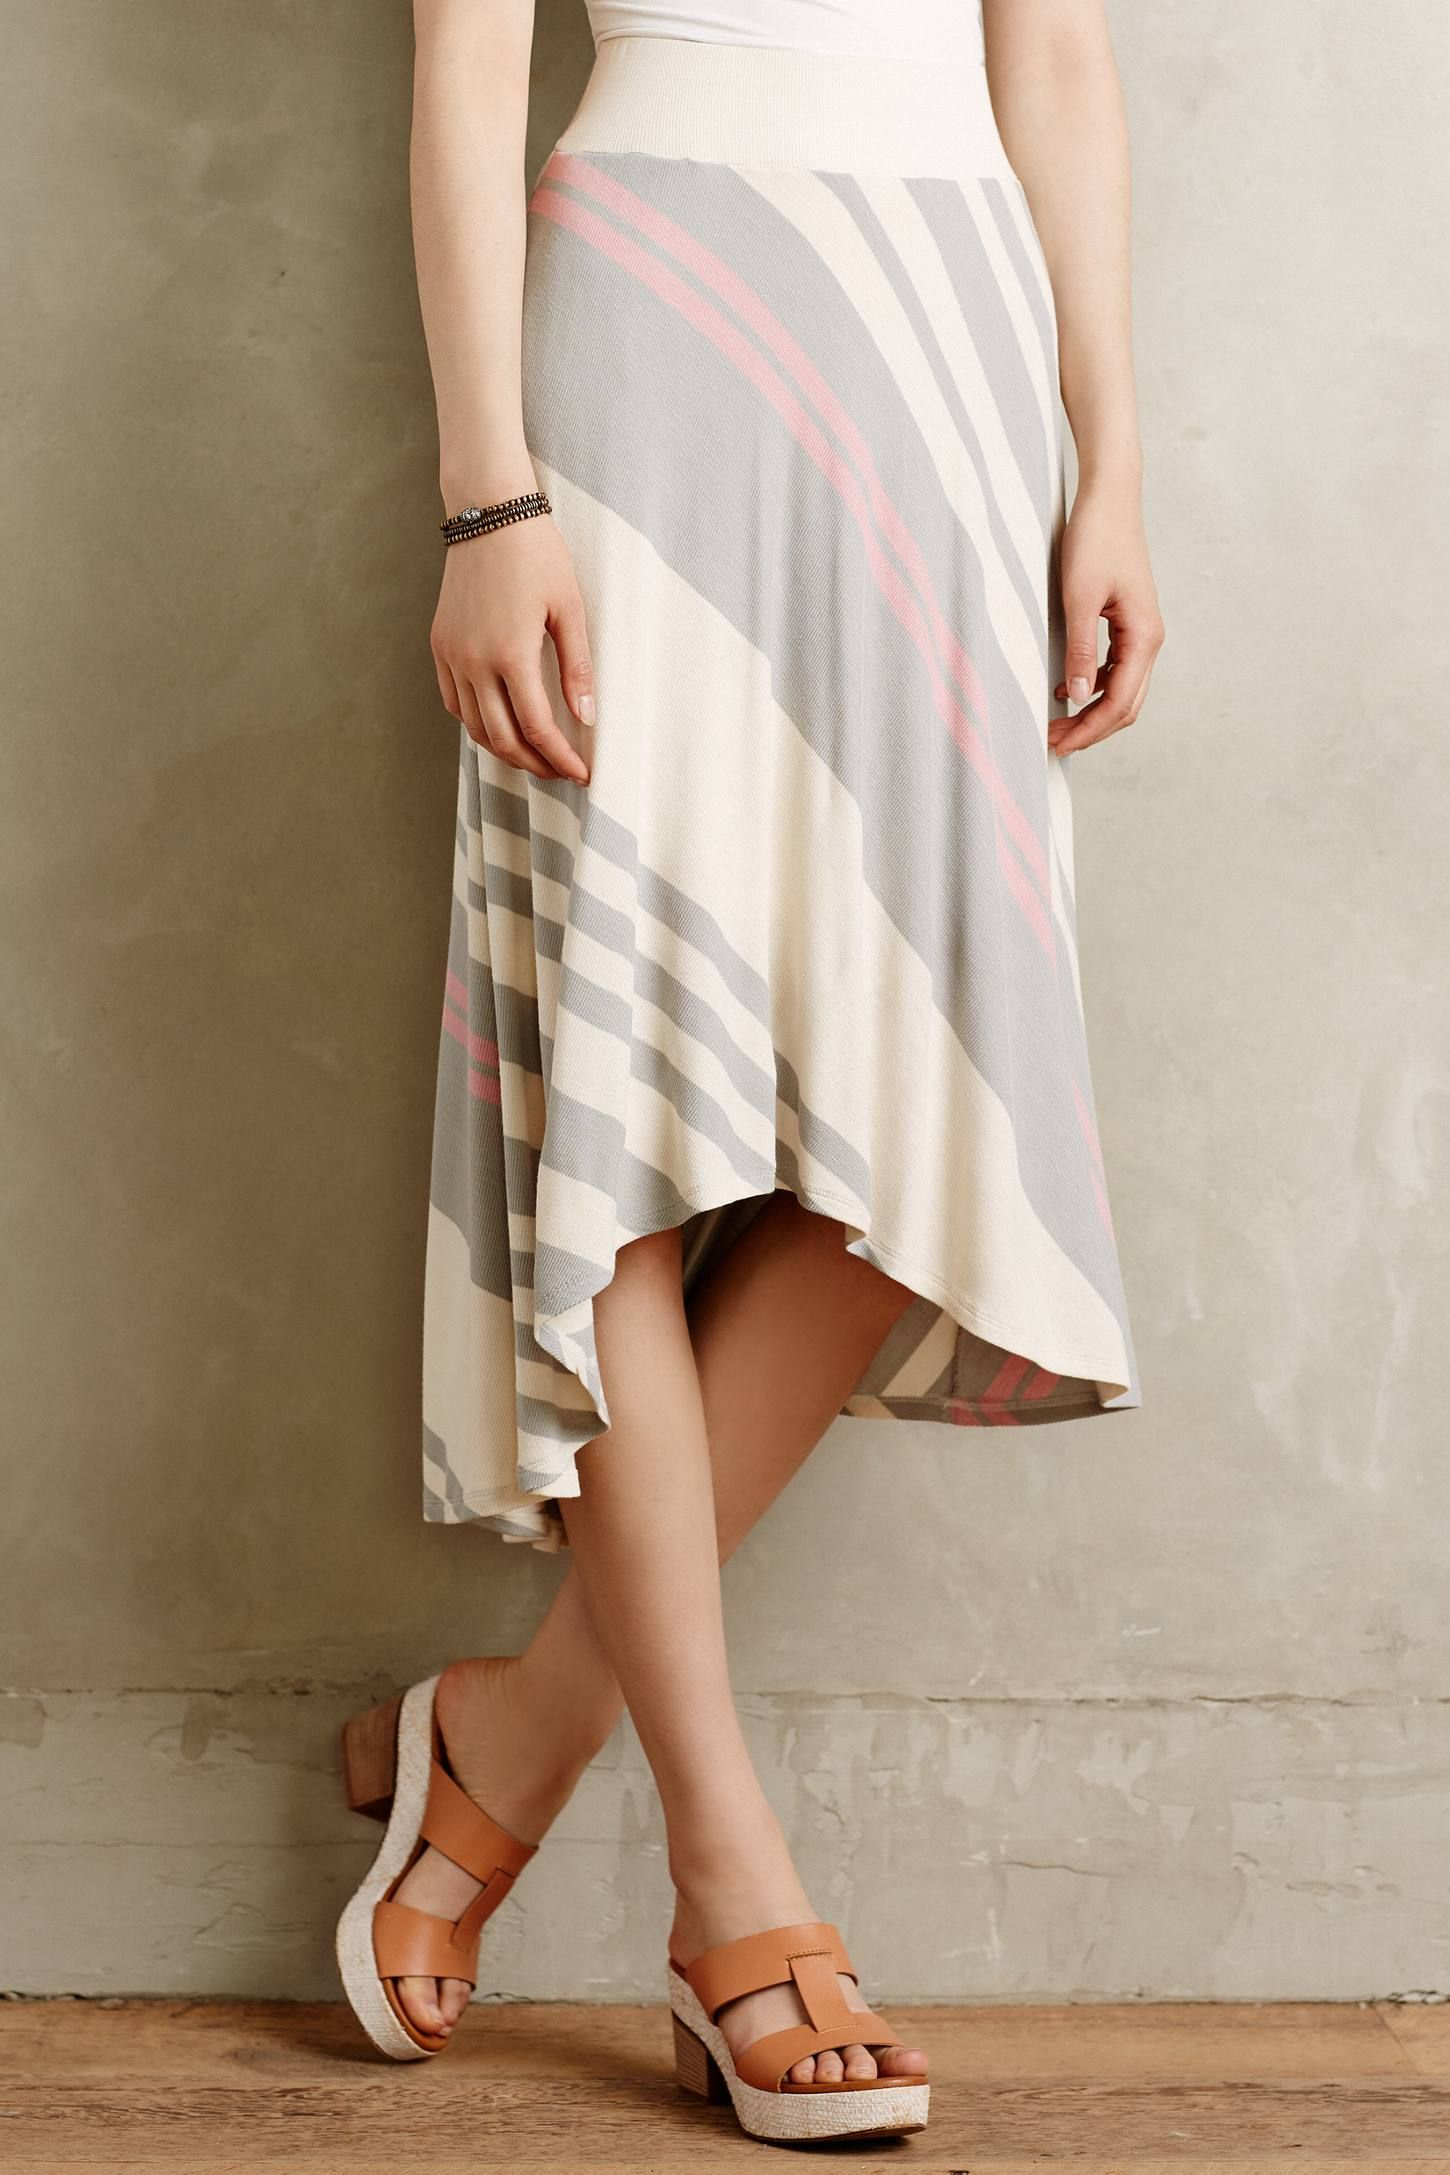 at anthropologie Seastripe Skirt - natural motif